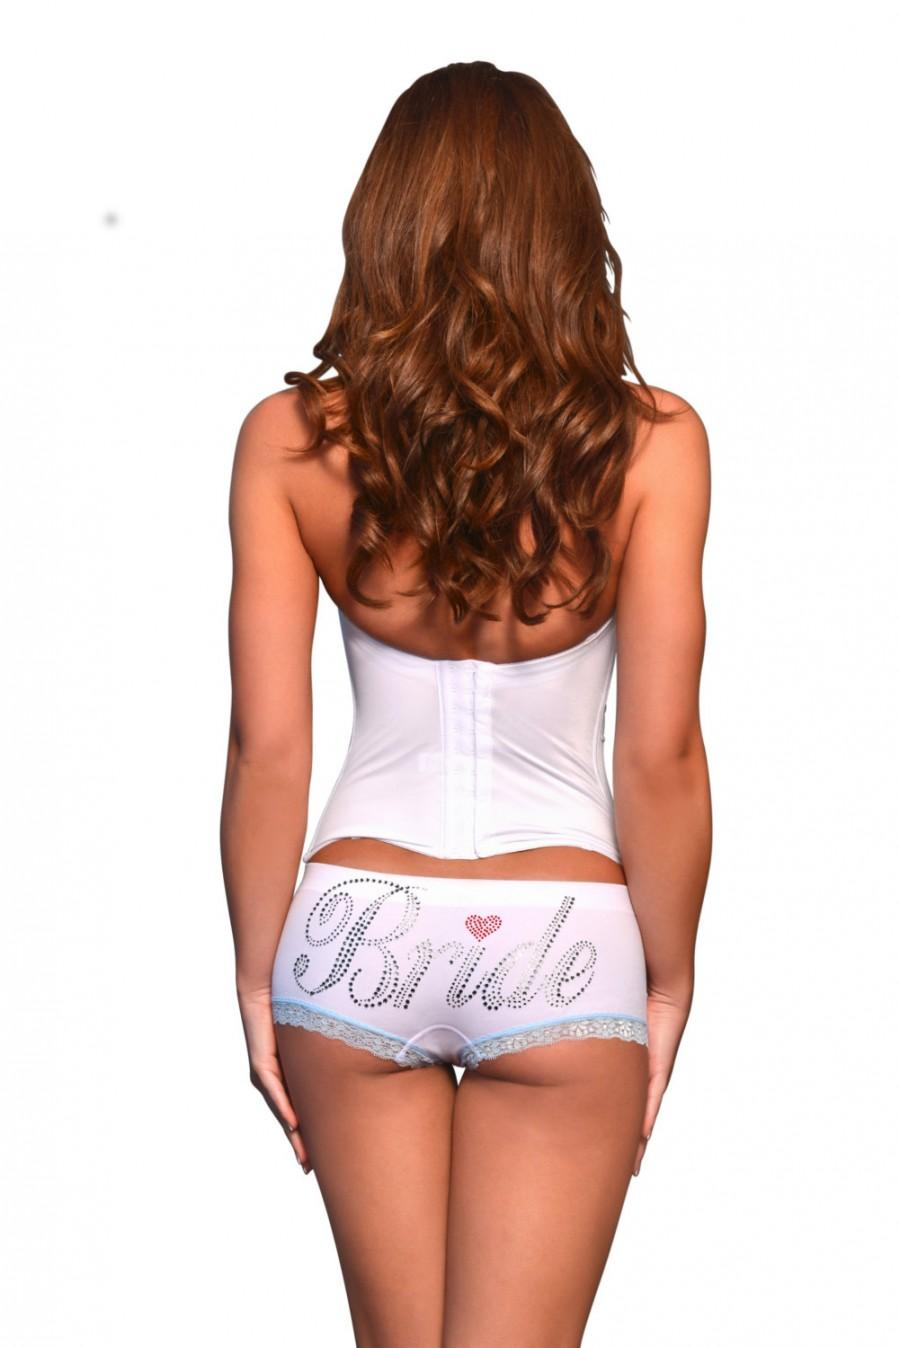 Düğün - Bride Underwear White and Blue with Rhinestone Bride wedding day underwear